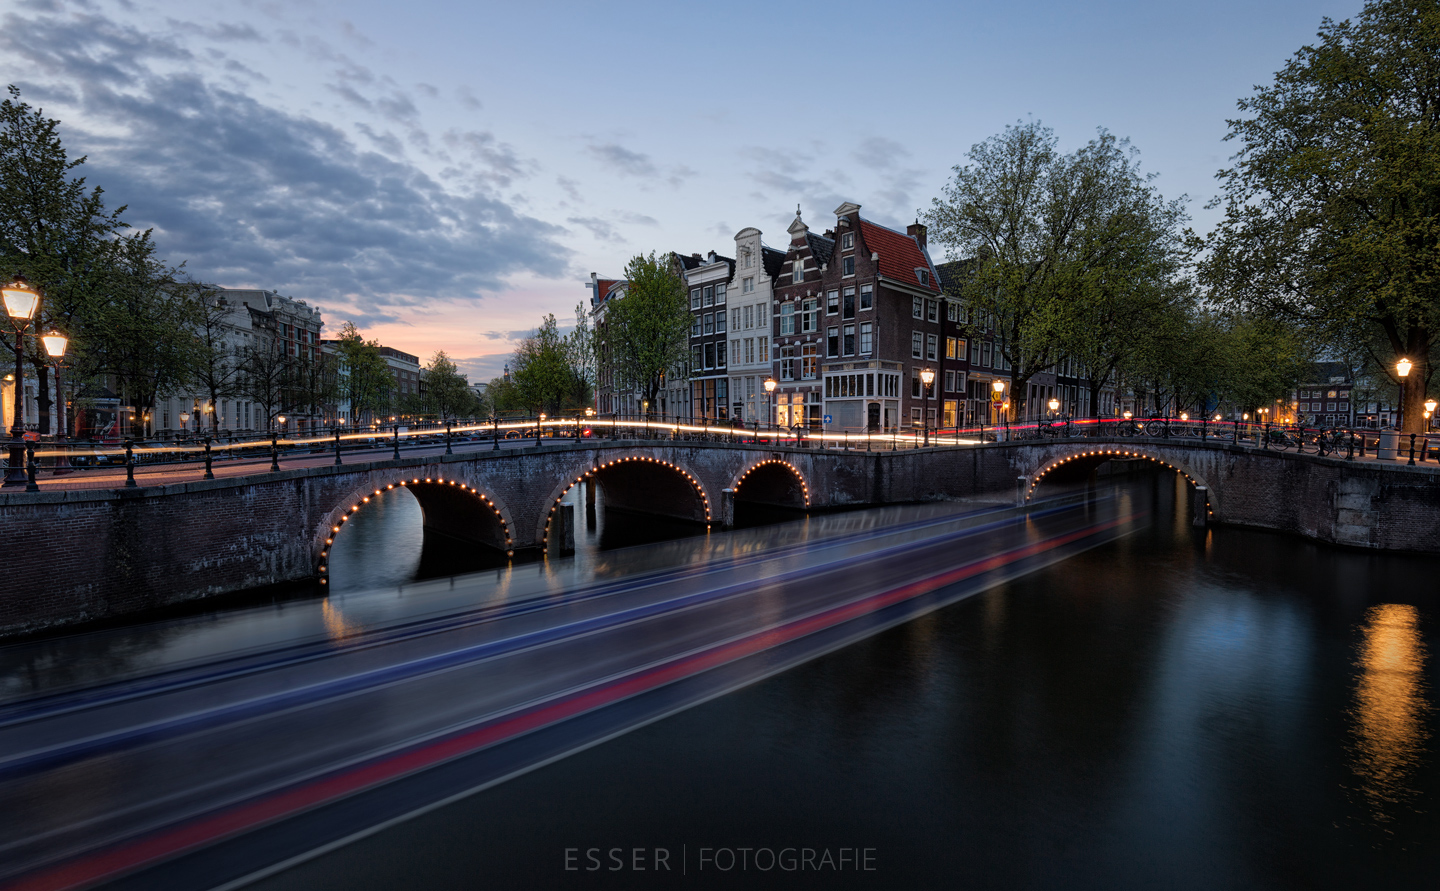 esser-fotografie-evening-at-the-canals